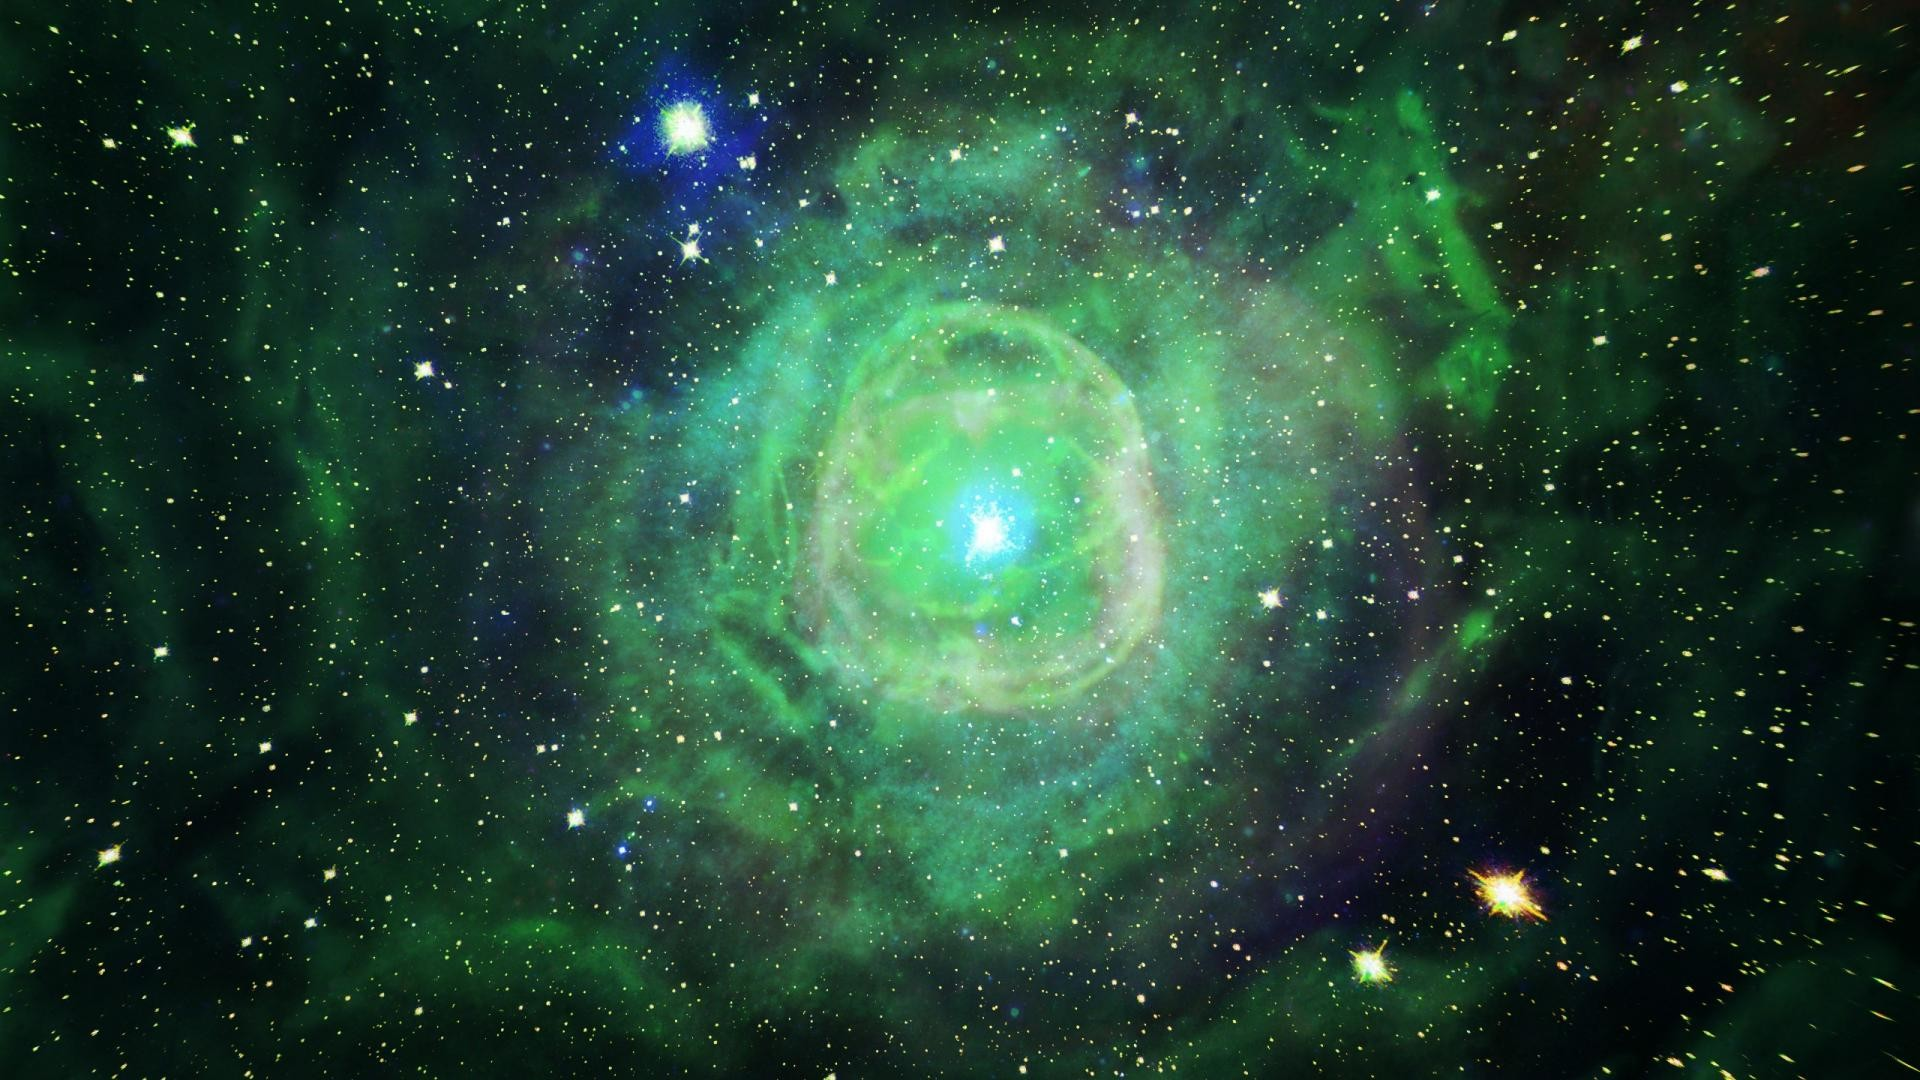 Green outer space stars explosions nebulae wallpaper   (25682)